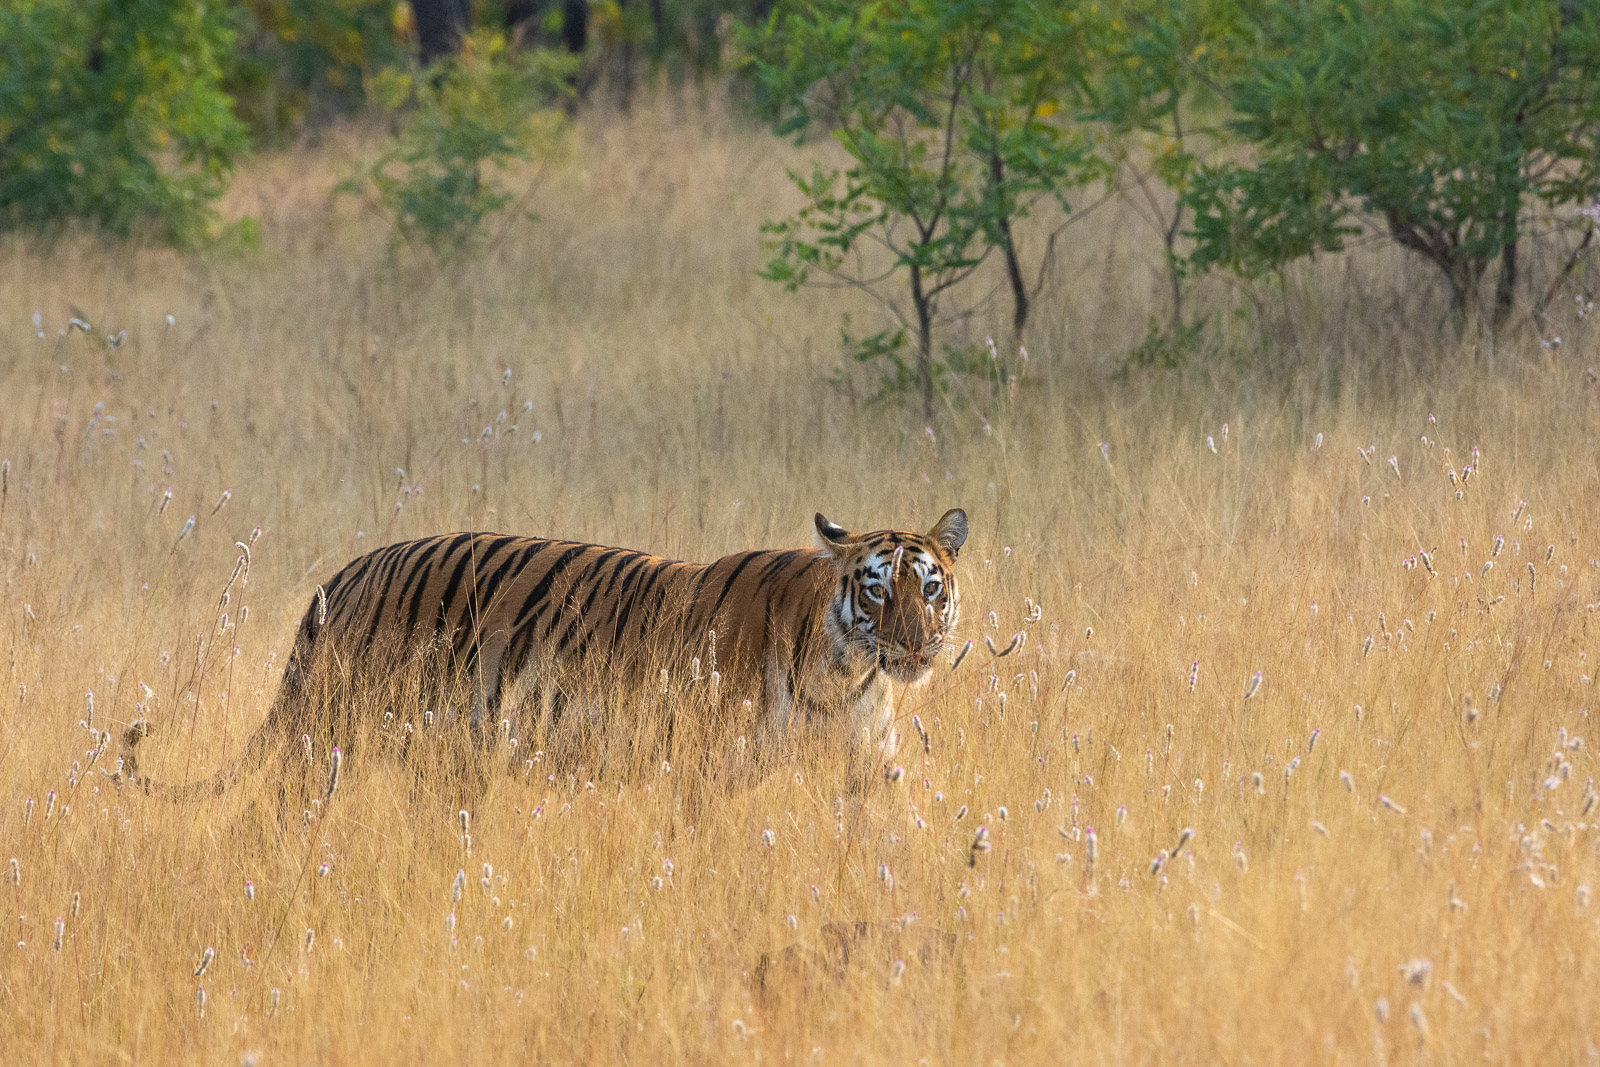 Image: Tigress in the dusty grassland. Lens managed to focus in a dusty environment. This image is c...